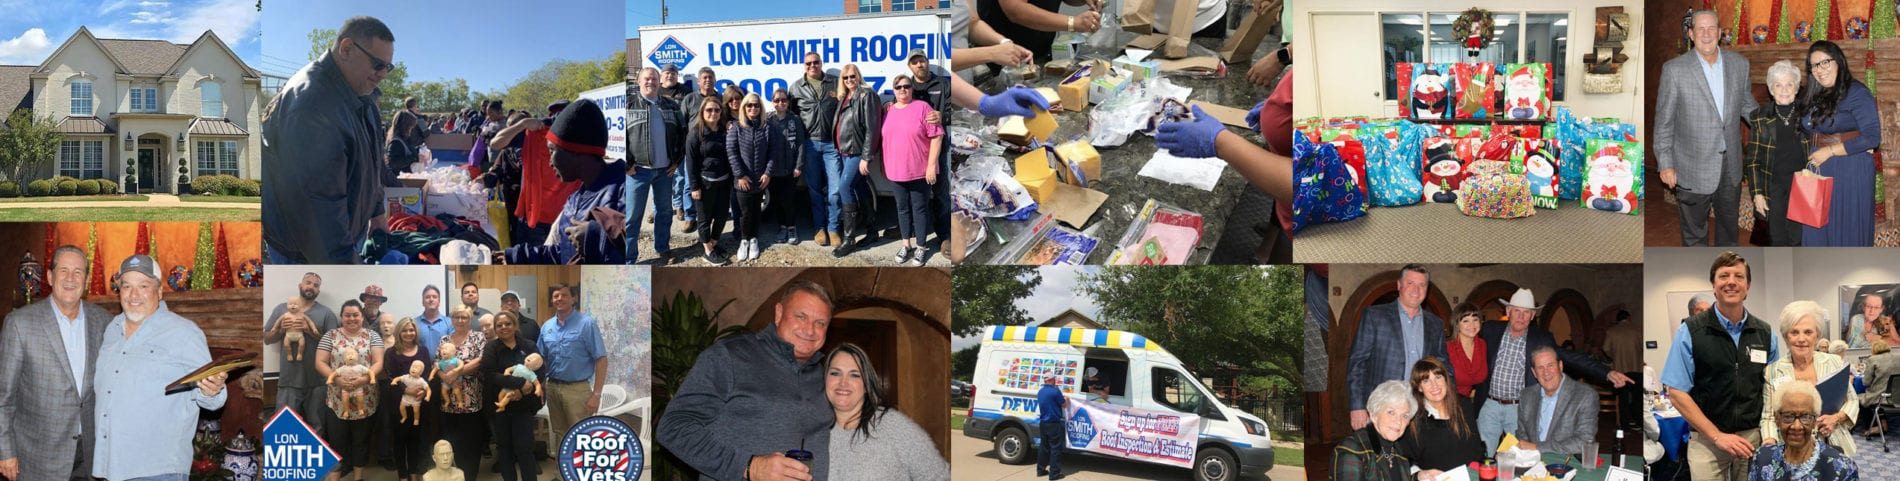 dallas roofing, Dallas Office, Lon Smith Roofing & Construction, Lon Smith Roofing & Construction